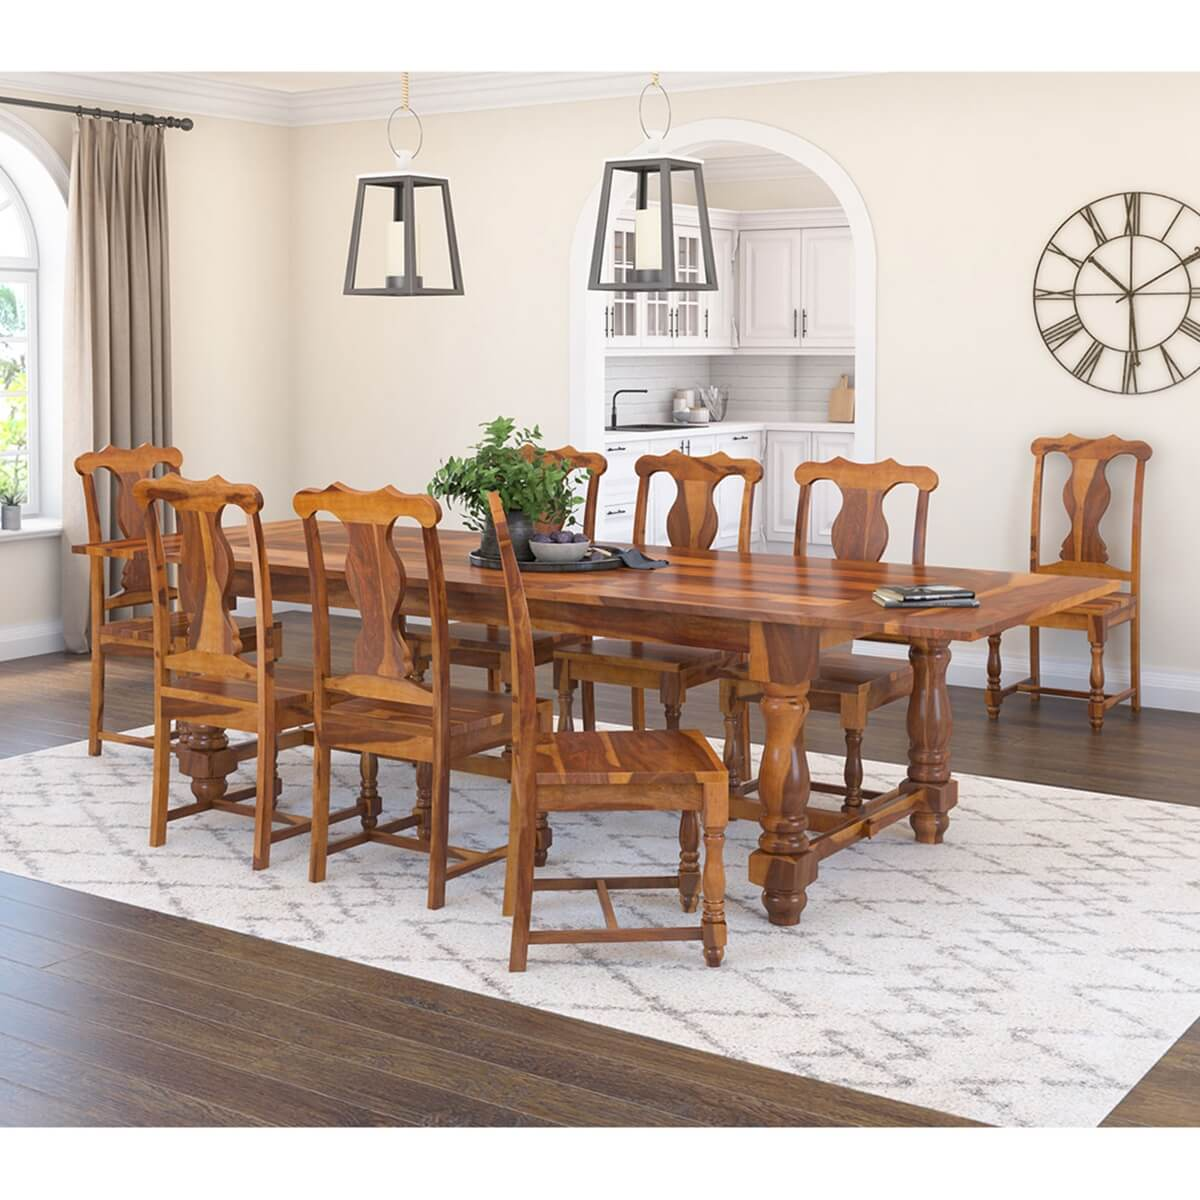 Wooden Dining Table Set: Rustic Solid Wood Dining Table & Chair Set Furniture W